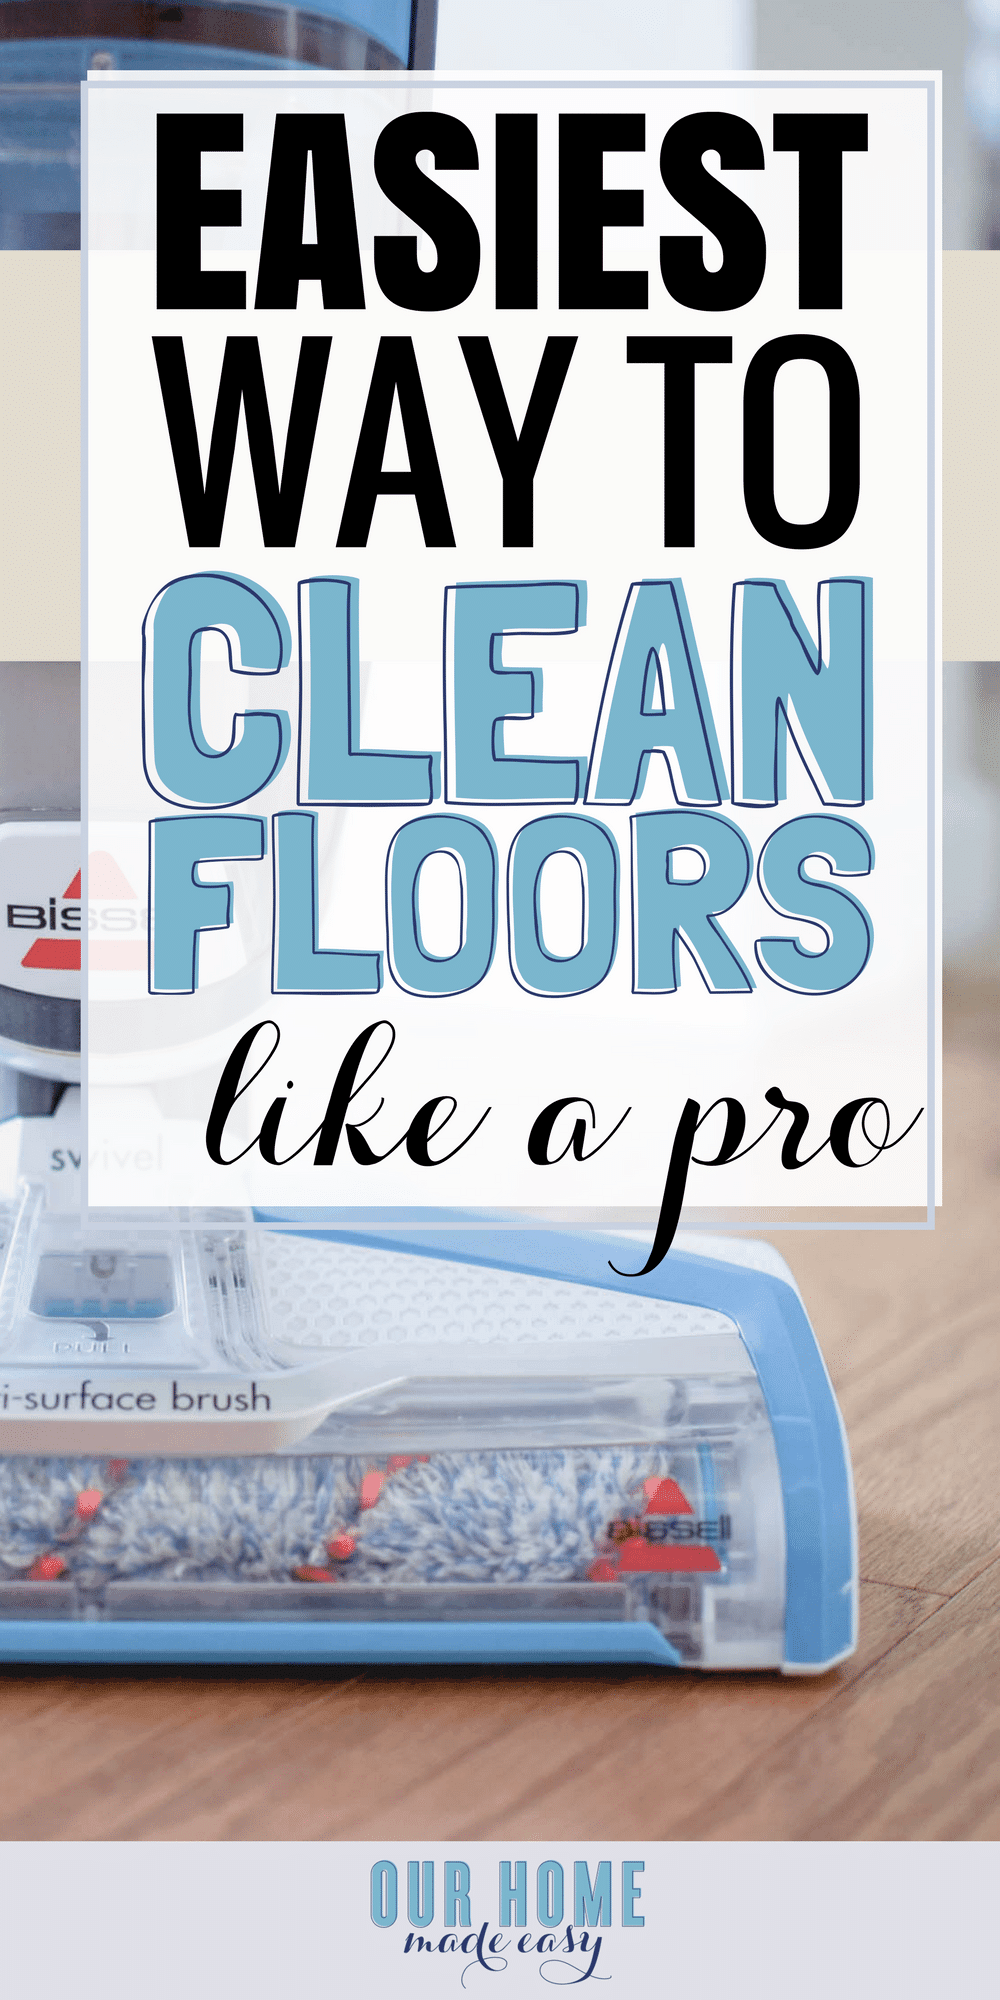 The Bissell Crosswave is the easiest way to keep all floors clean when you are too busy to mop and vacuum! Read the review for the easiest way to keep your floors clean! #bissellcrosswave #cleaning #flooring #bissell #